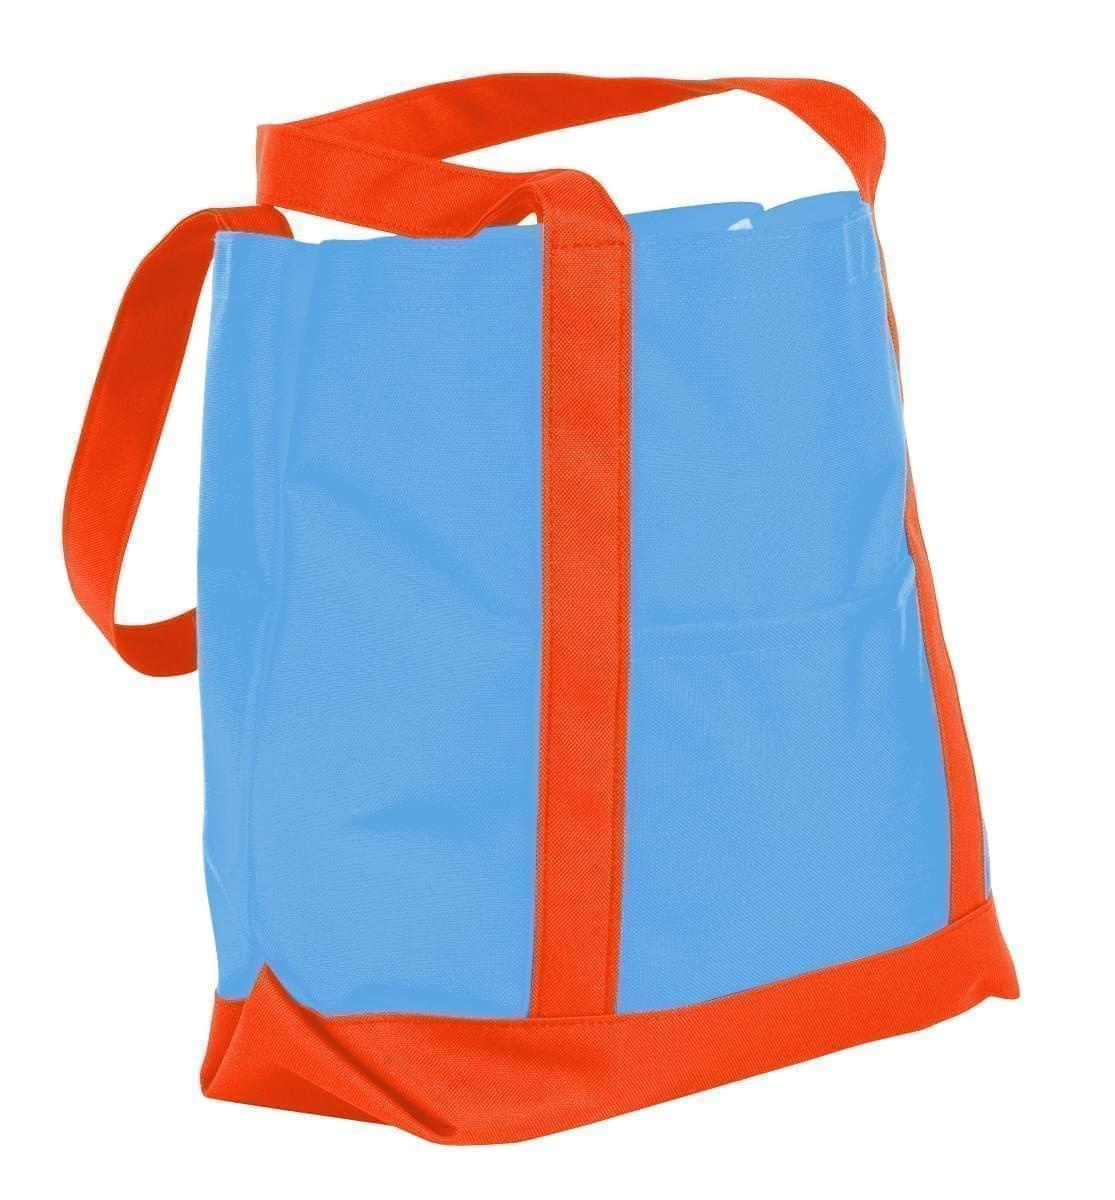 USA Made Nylon Poly Boat Tote Bags, Columbia-Orange, XAACL1UAUJ